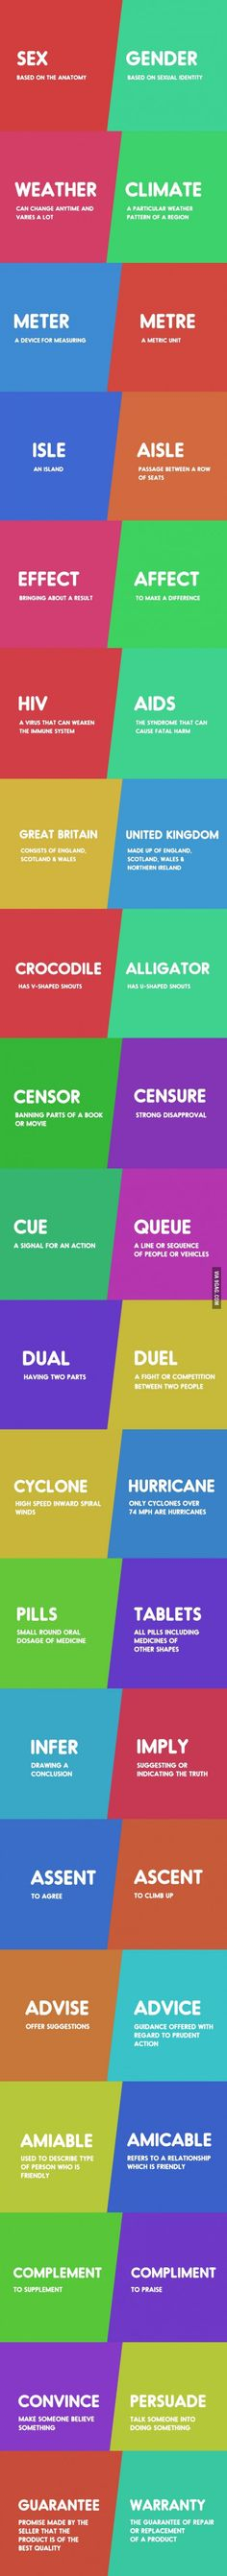 20 Sets Of Words Which Sound Similar But Have Different Meanings